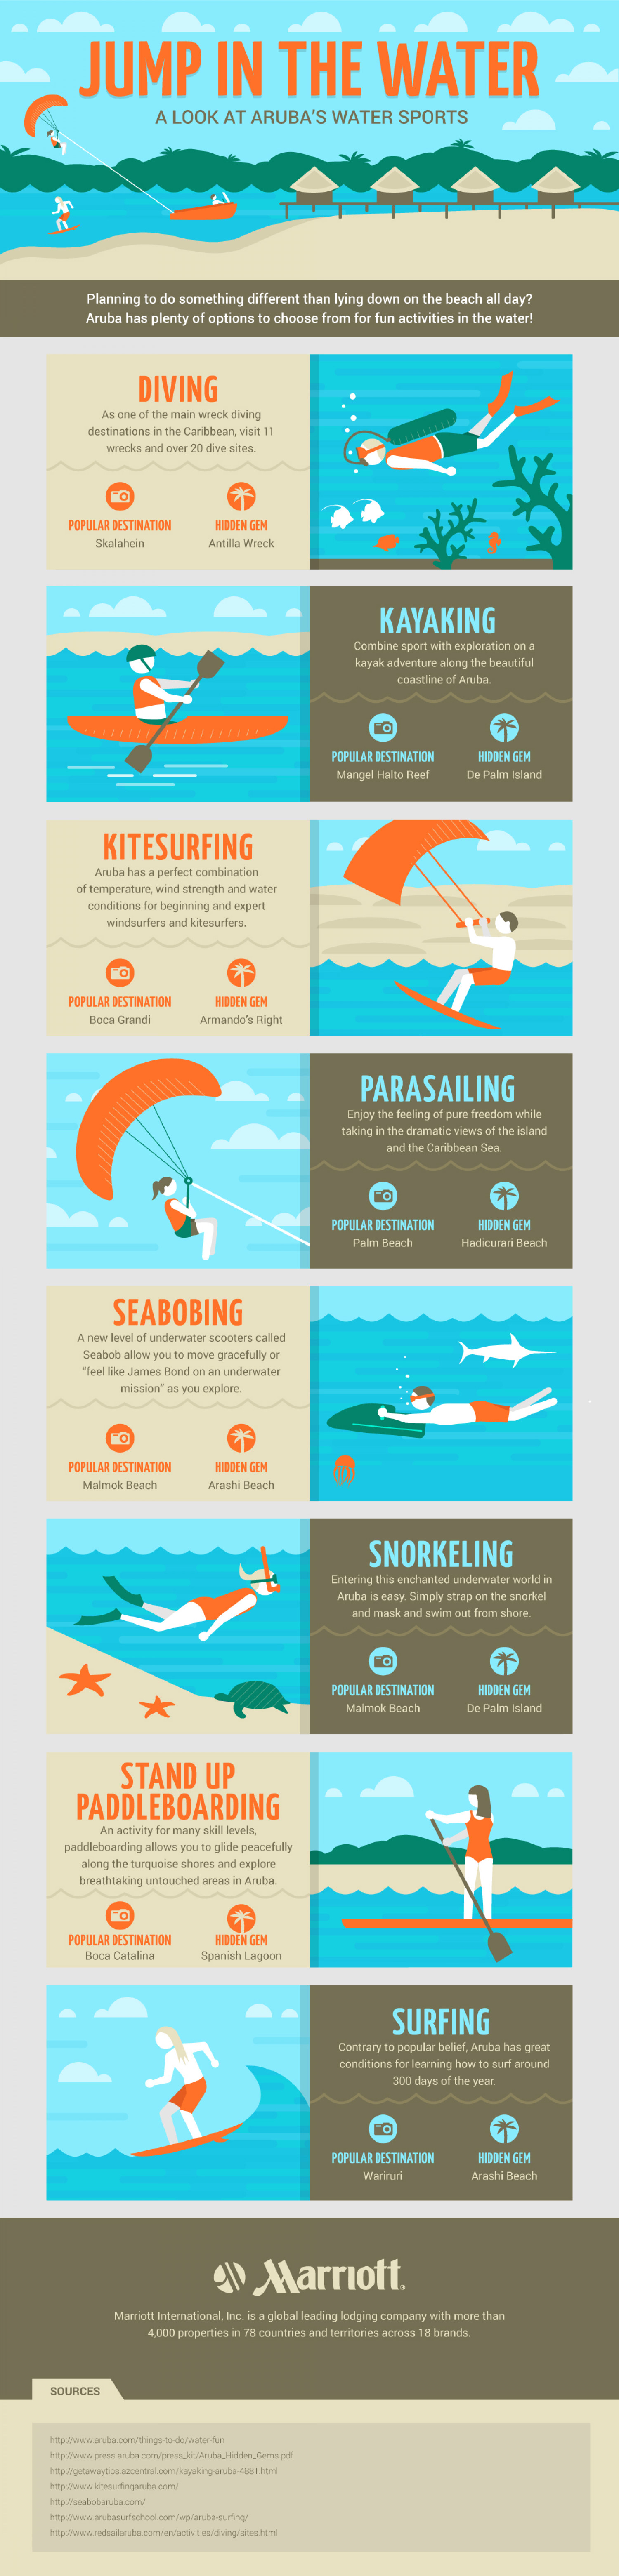 Aruba water sports Infographic